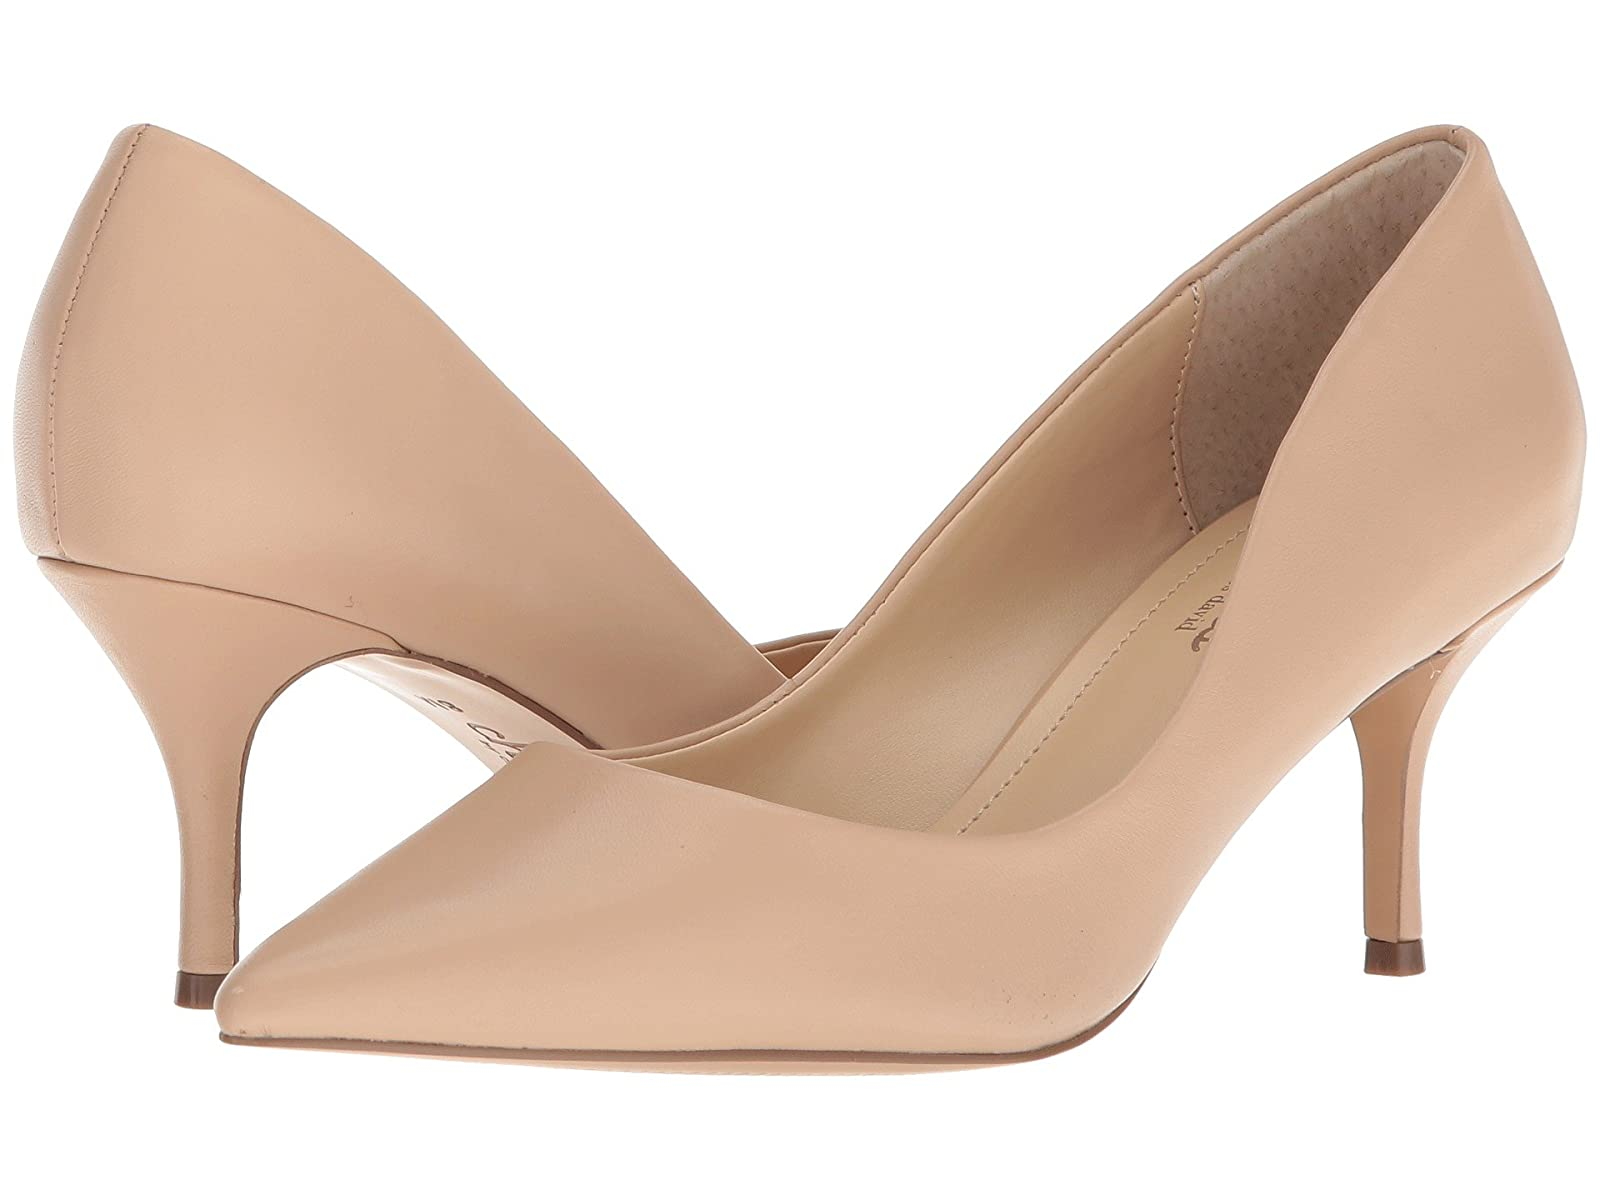 Charles by Charles David AddieAtmospheric grades have affordable shoes